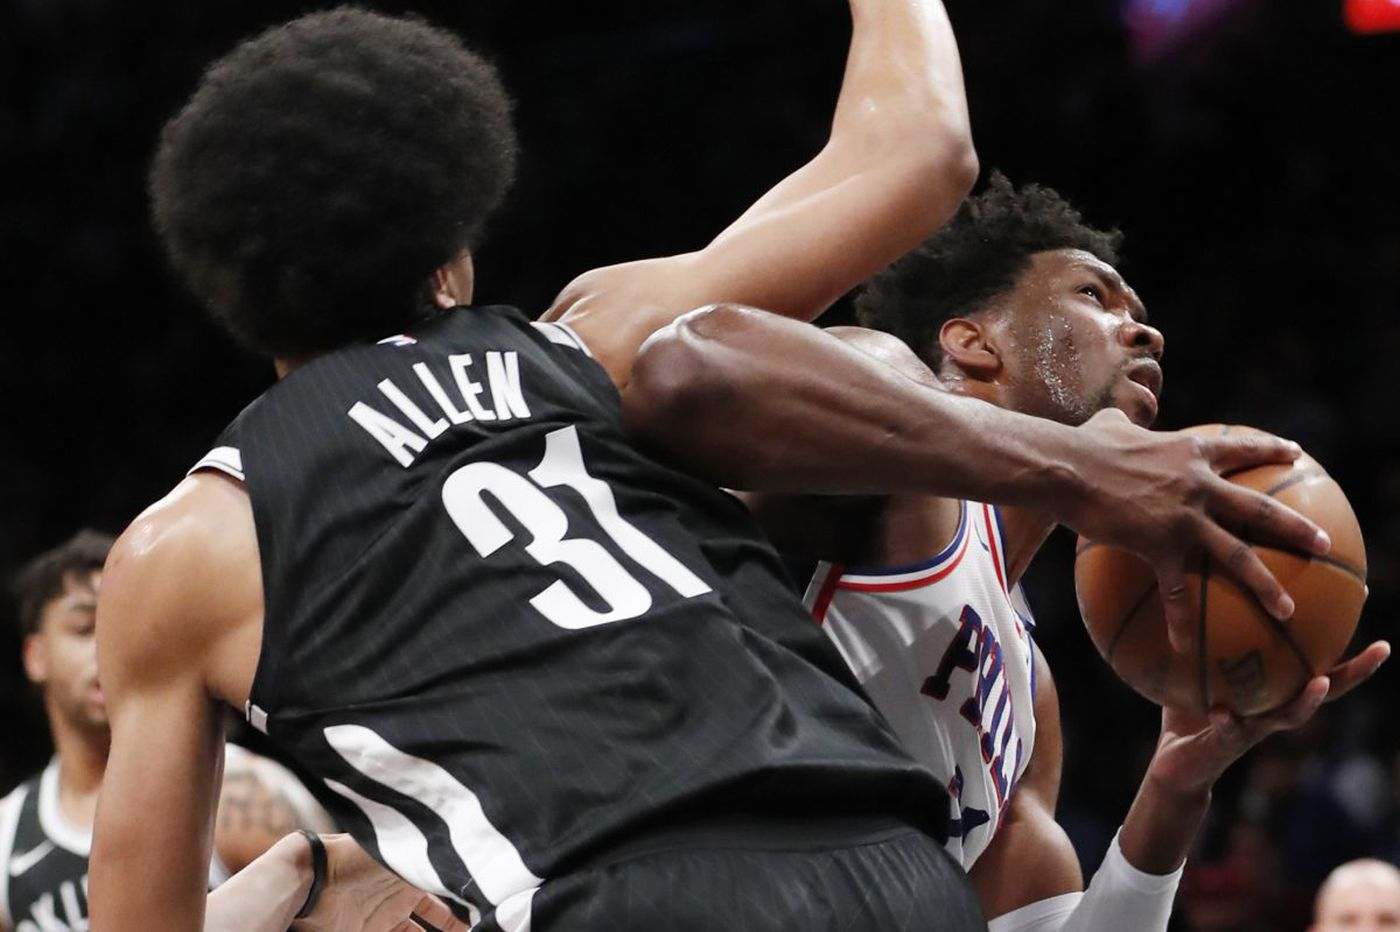 Joel Embiid leads balanced attack as Sixers prevail 120-97 over Brooklyn Nets